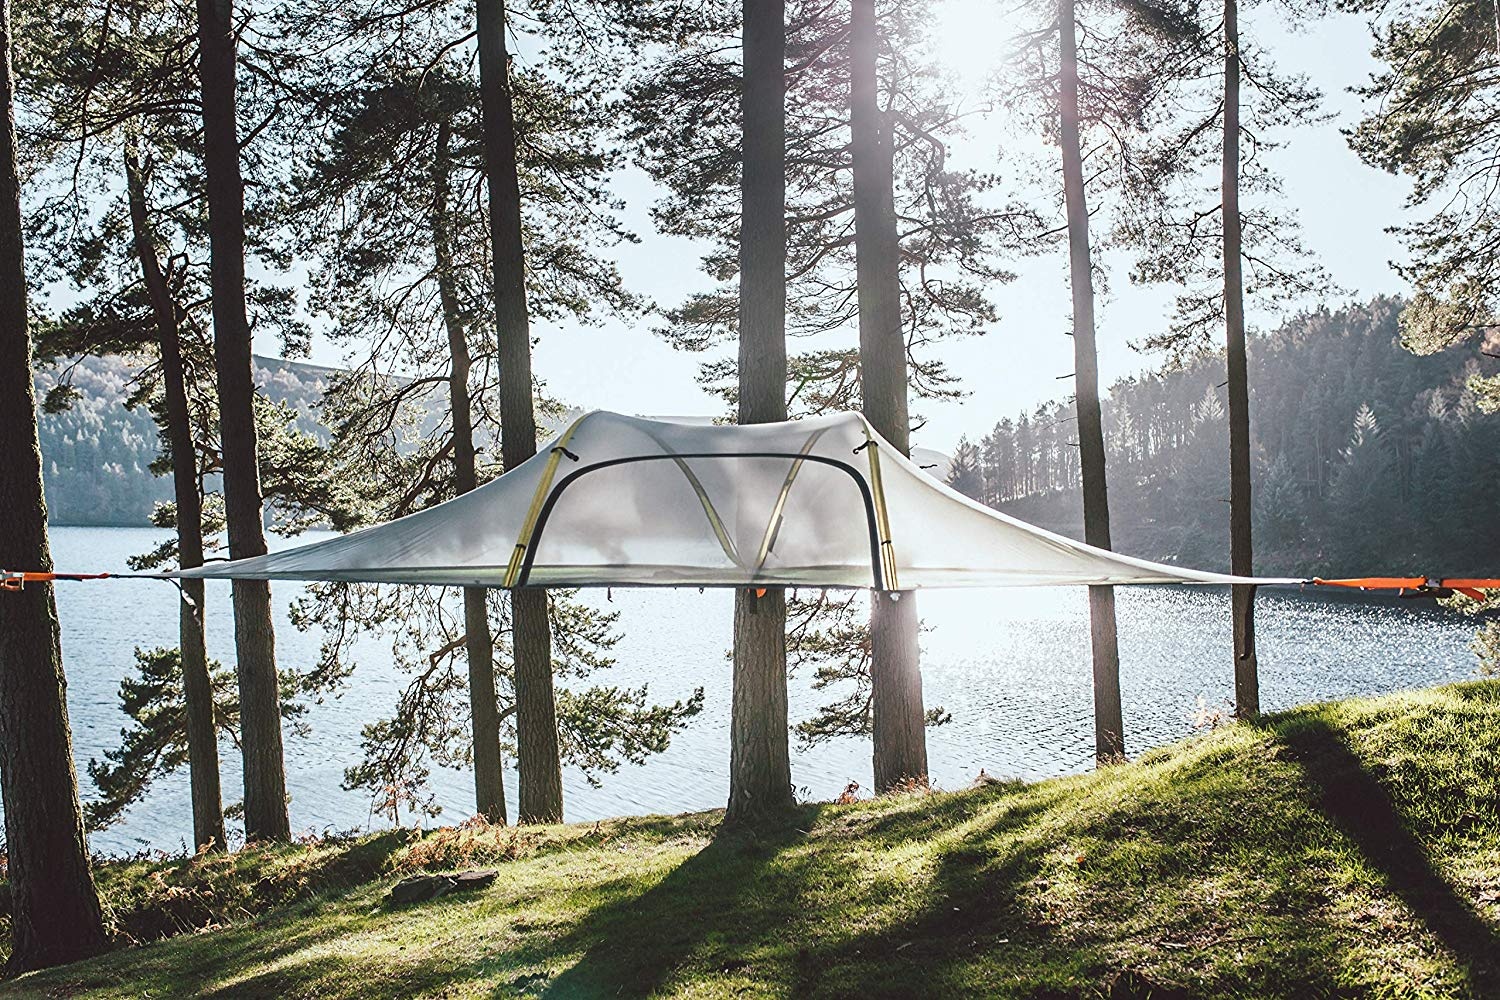 Tentsile Stingray 3-Person Tree House Tent Near the Lake